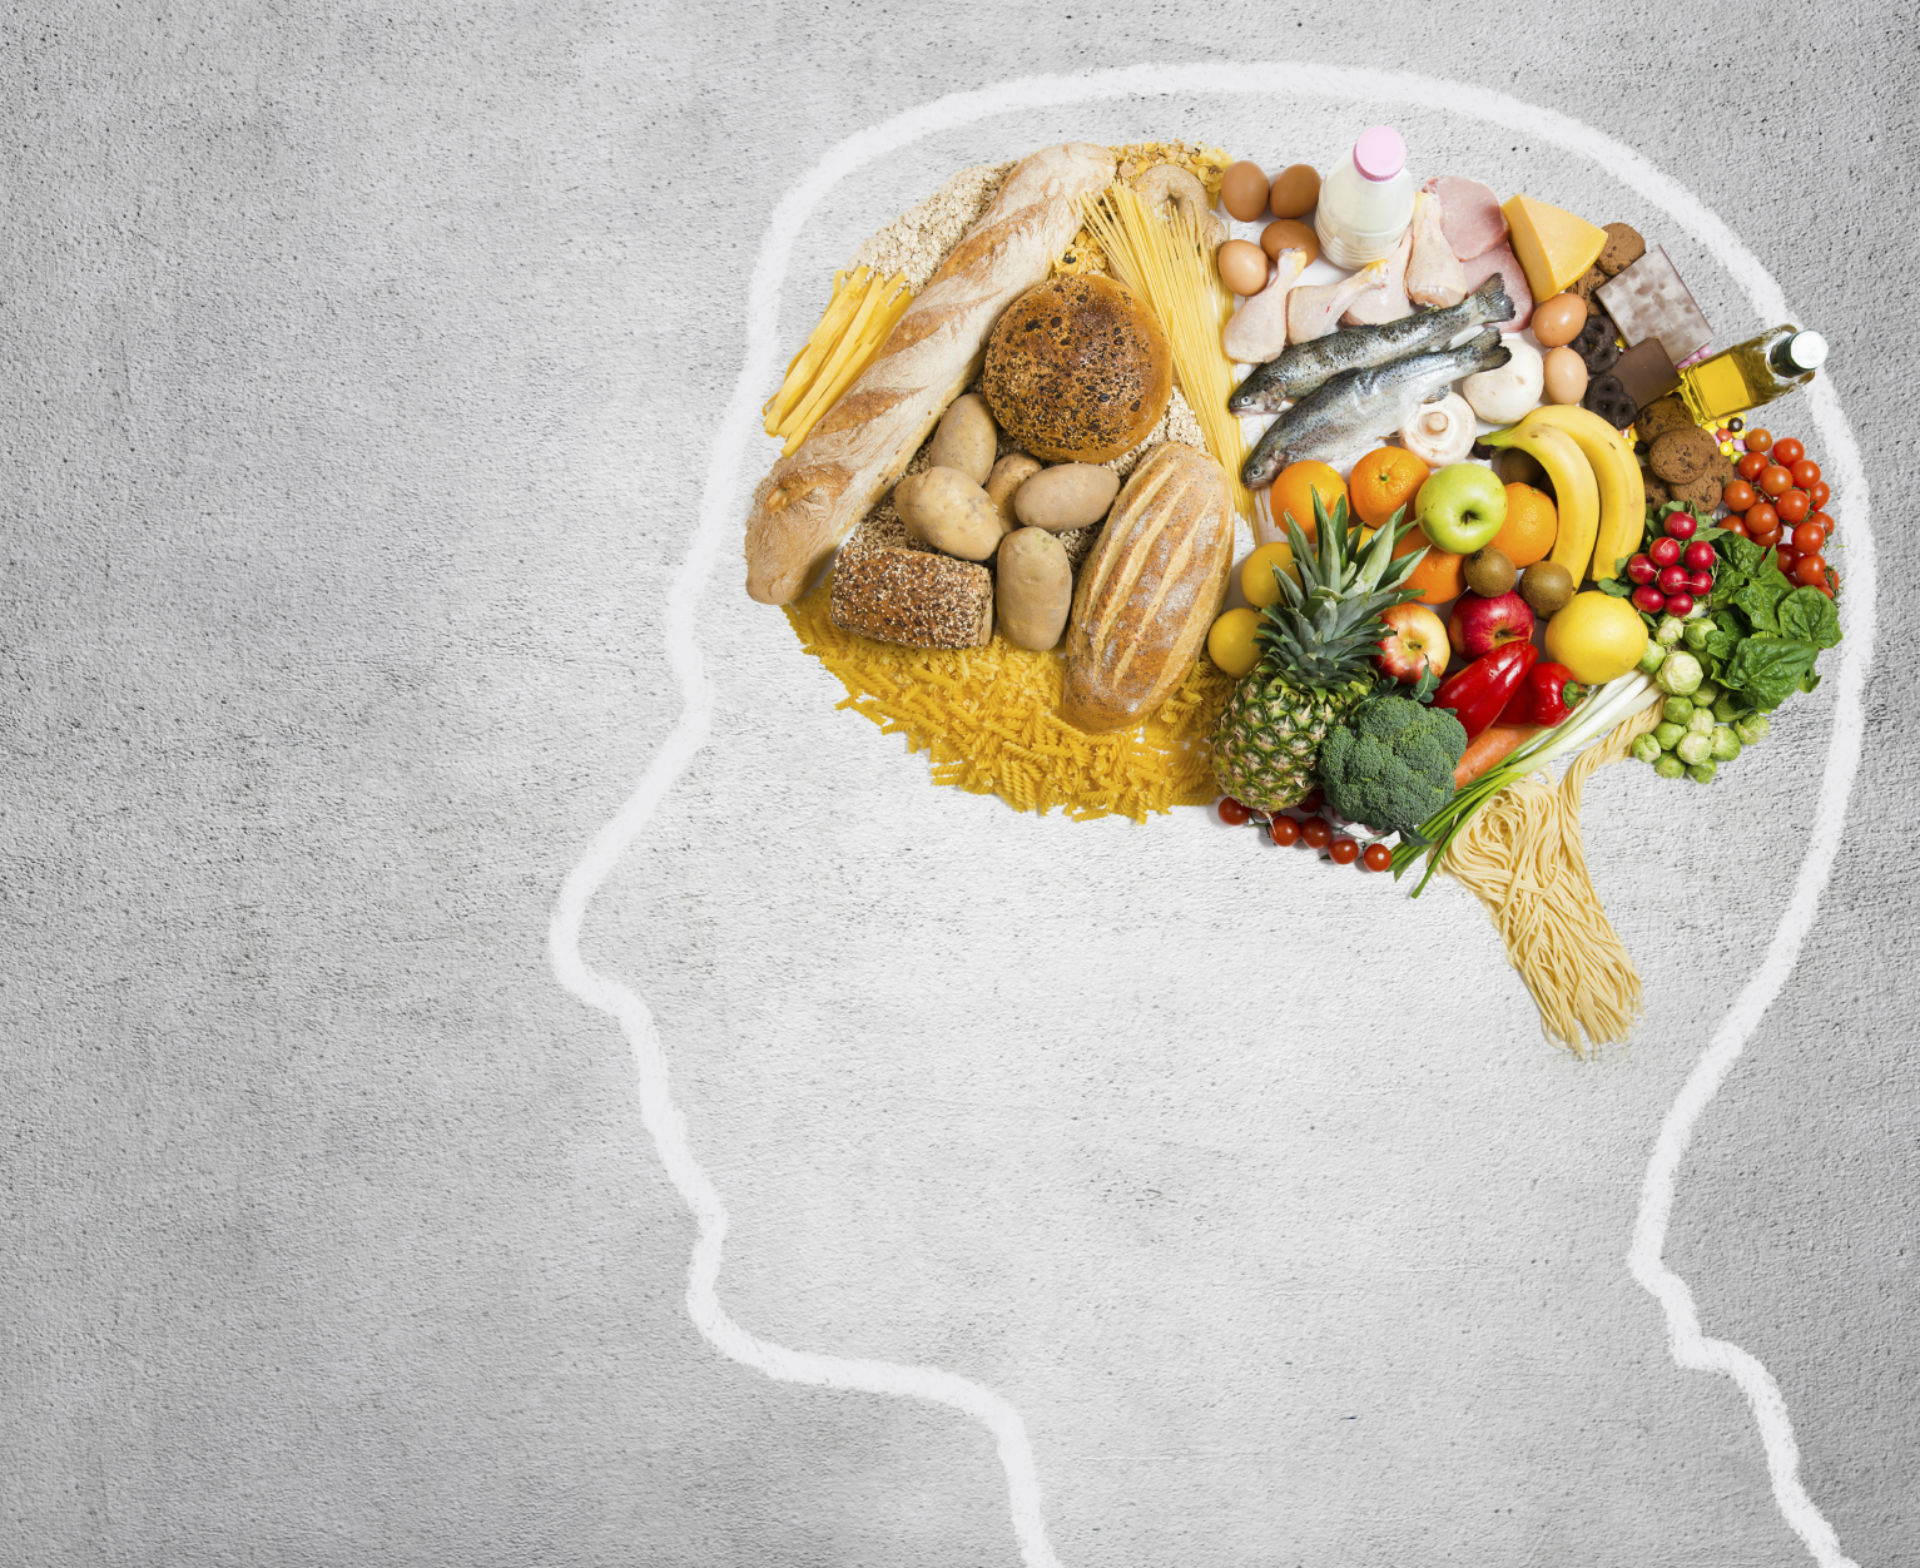 6 Brain Foods to Keep You Going During a Busy Day at Work